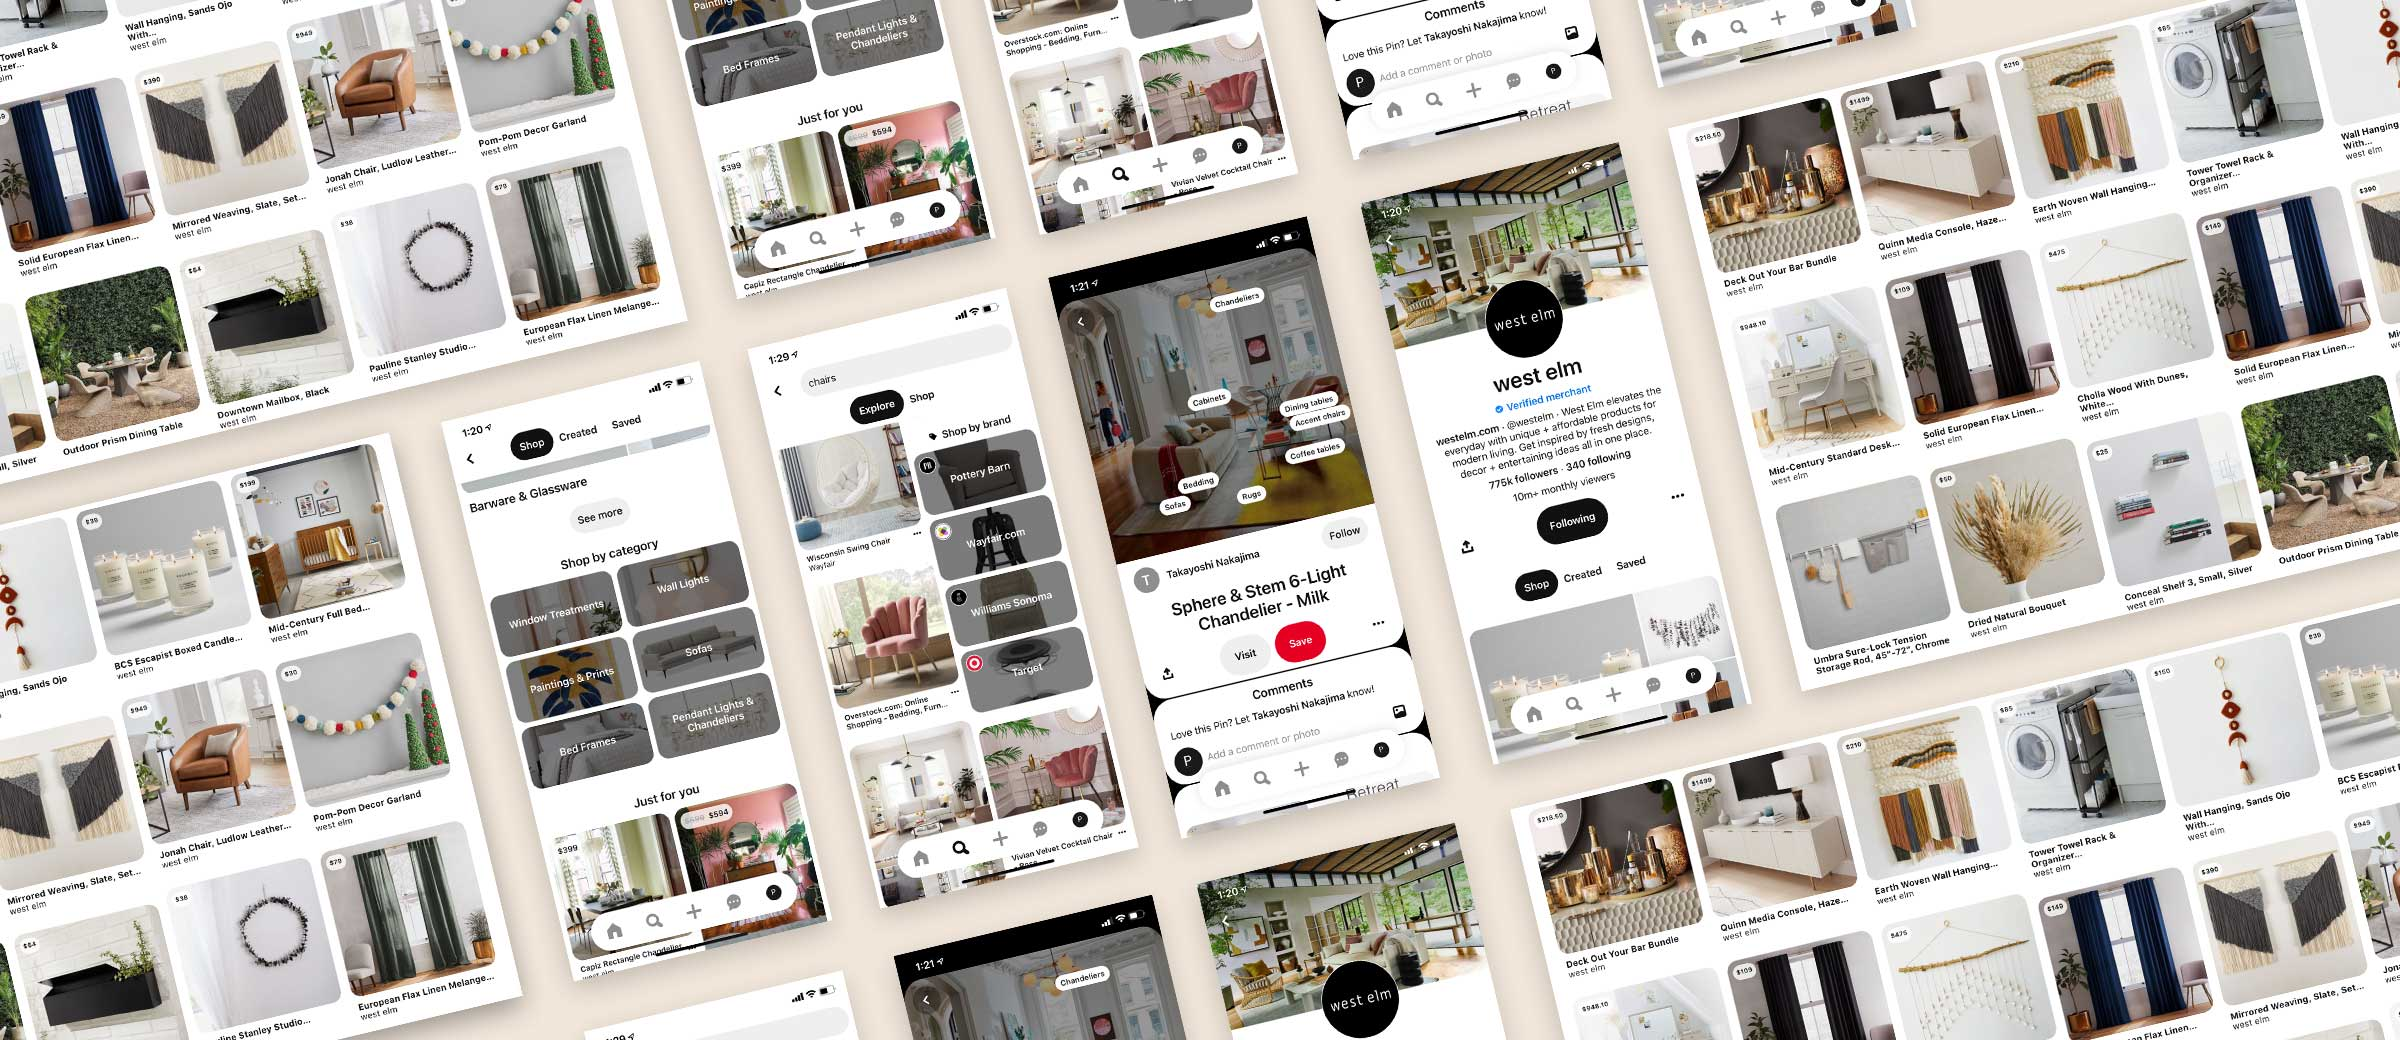 PLANOLY-Blog-Post-How-Retailers-Can-Use-Pinterest-Shops-Feature-Feature Image